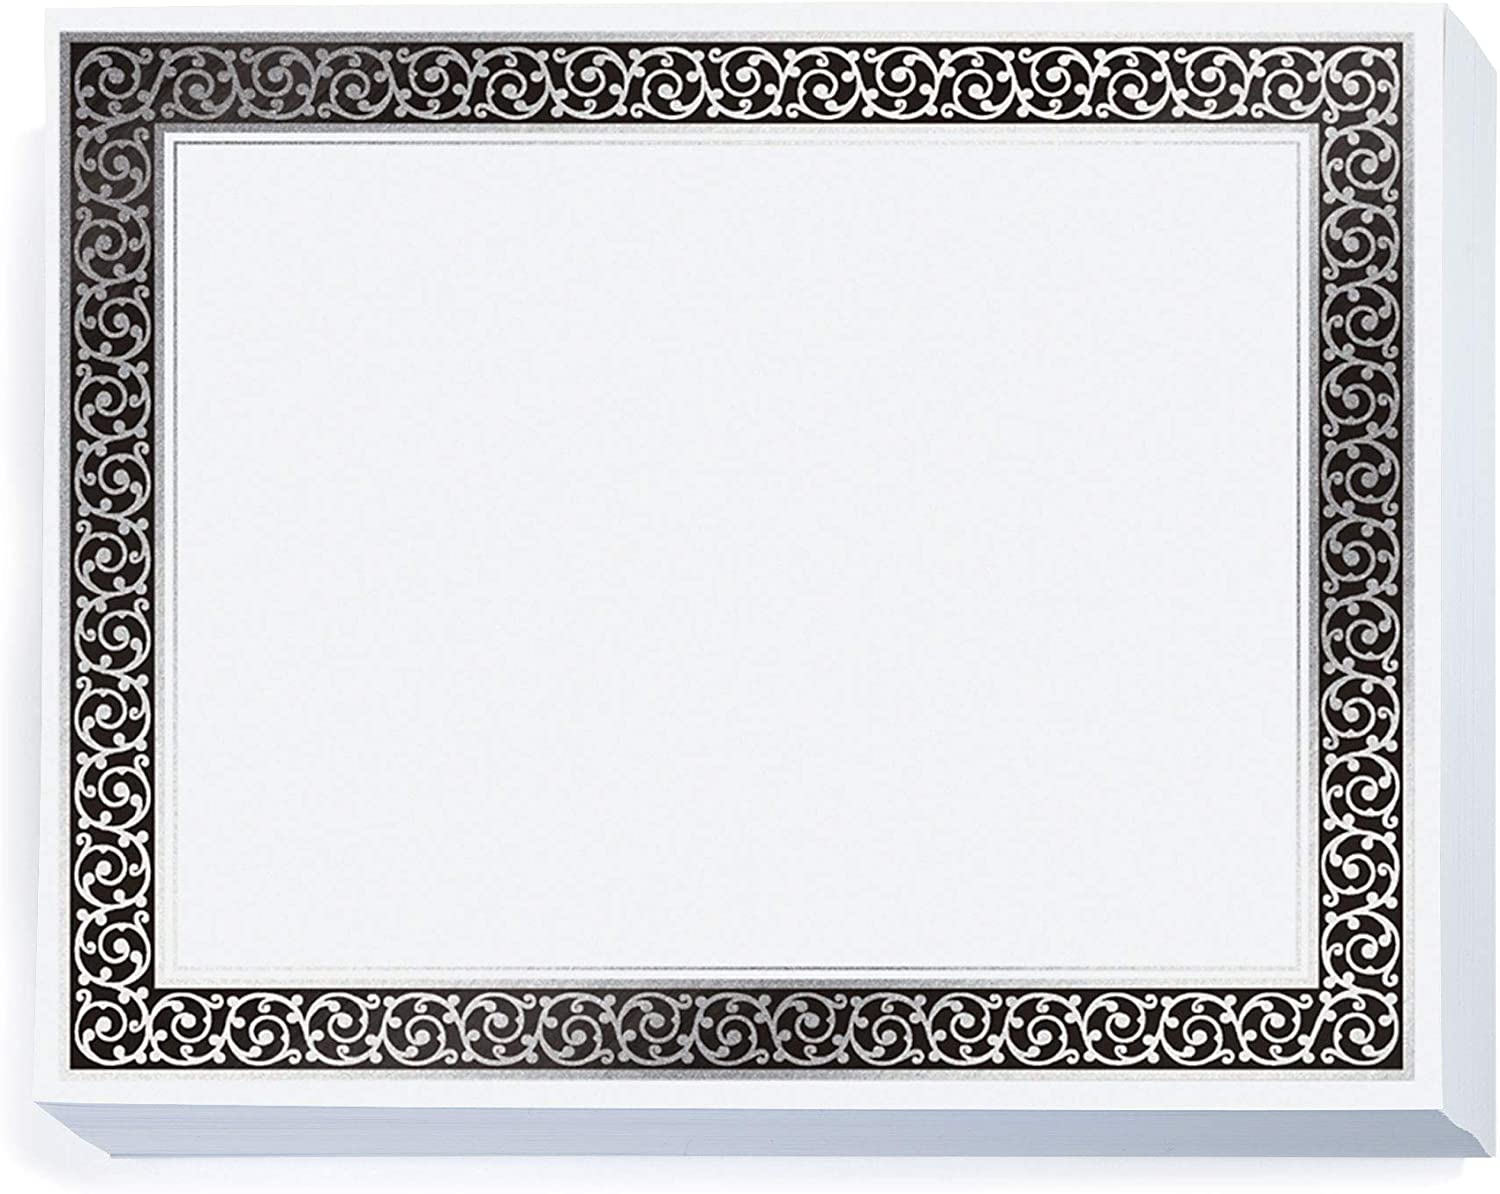 PaperDirect Emporium Specialty White and Fixed price for Dealing full price reduction sale Certific Silver Black